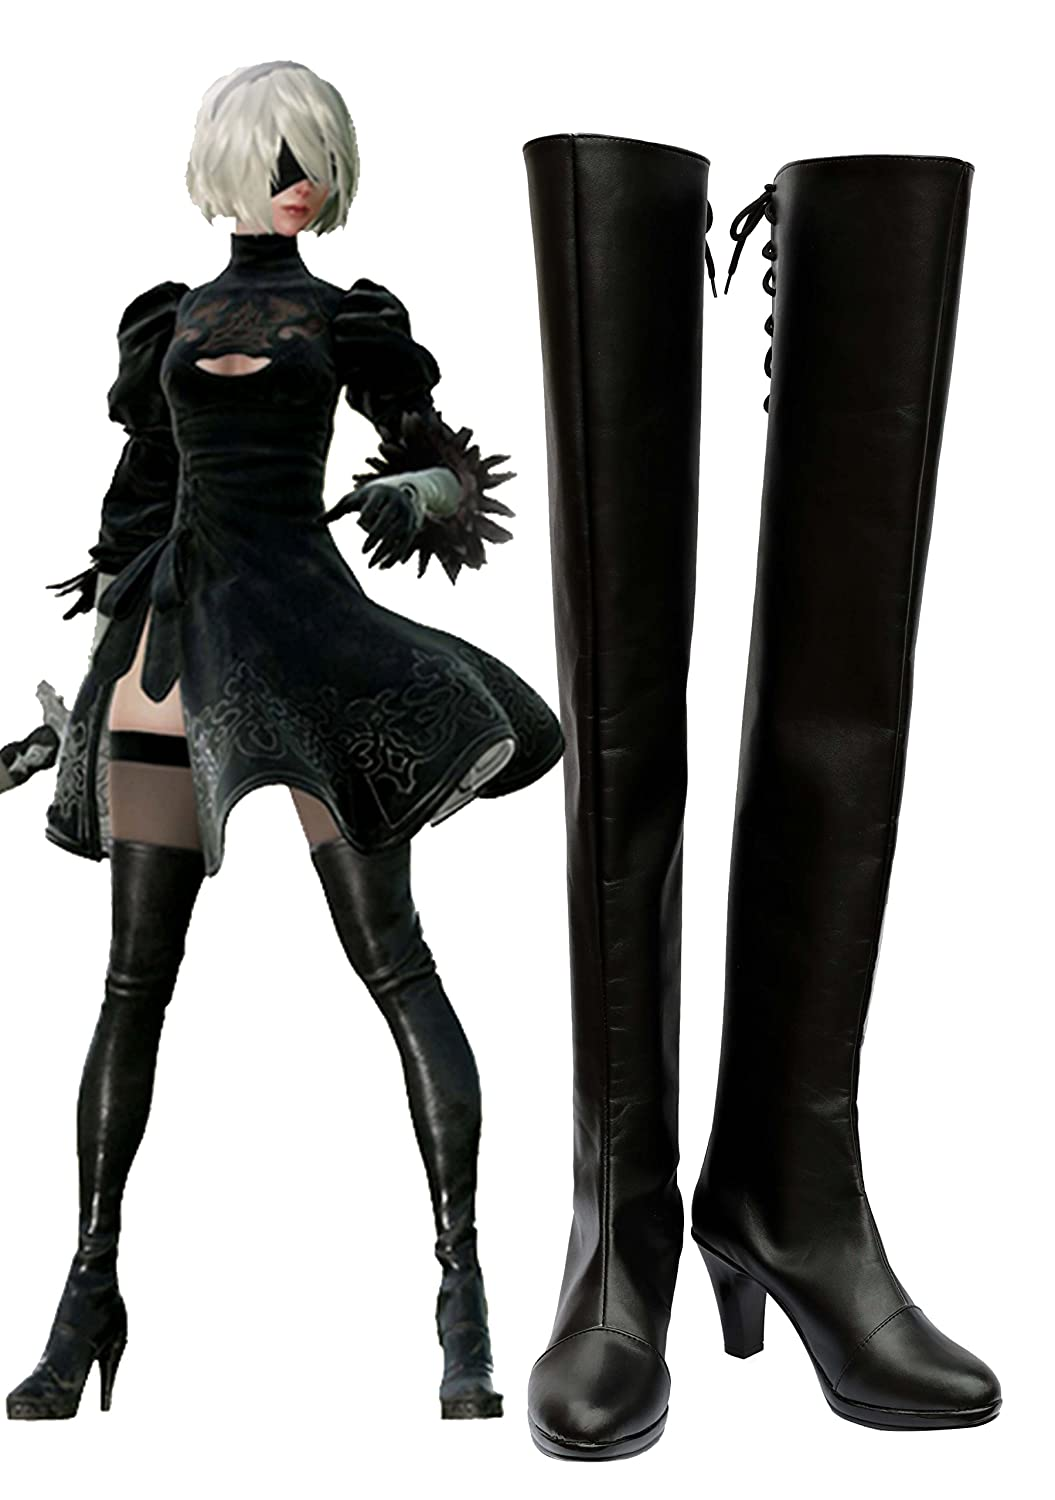 NieR: Automata 2B Boots Cosplay Shoes Boots Custom Made 12 B(M) US Female